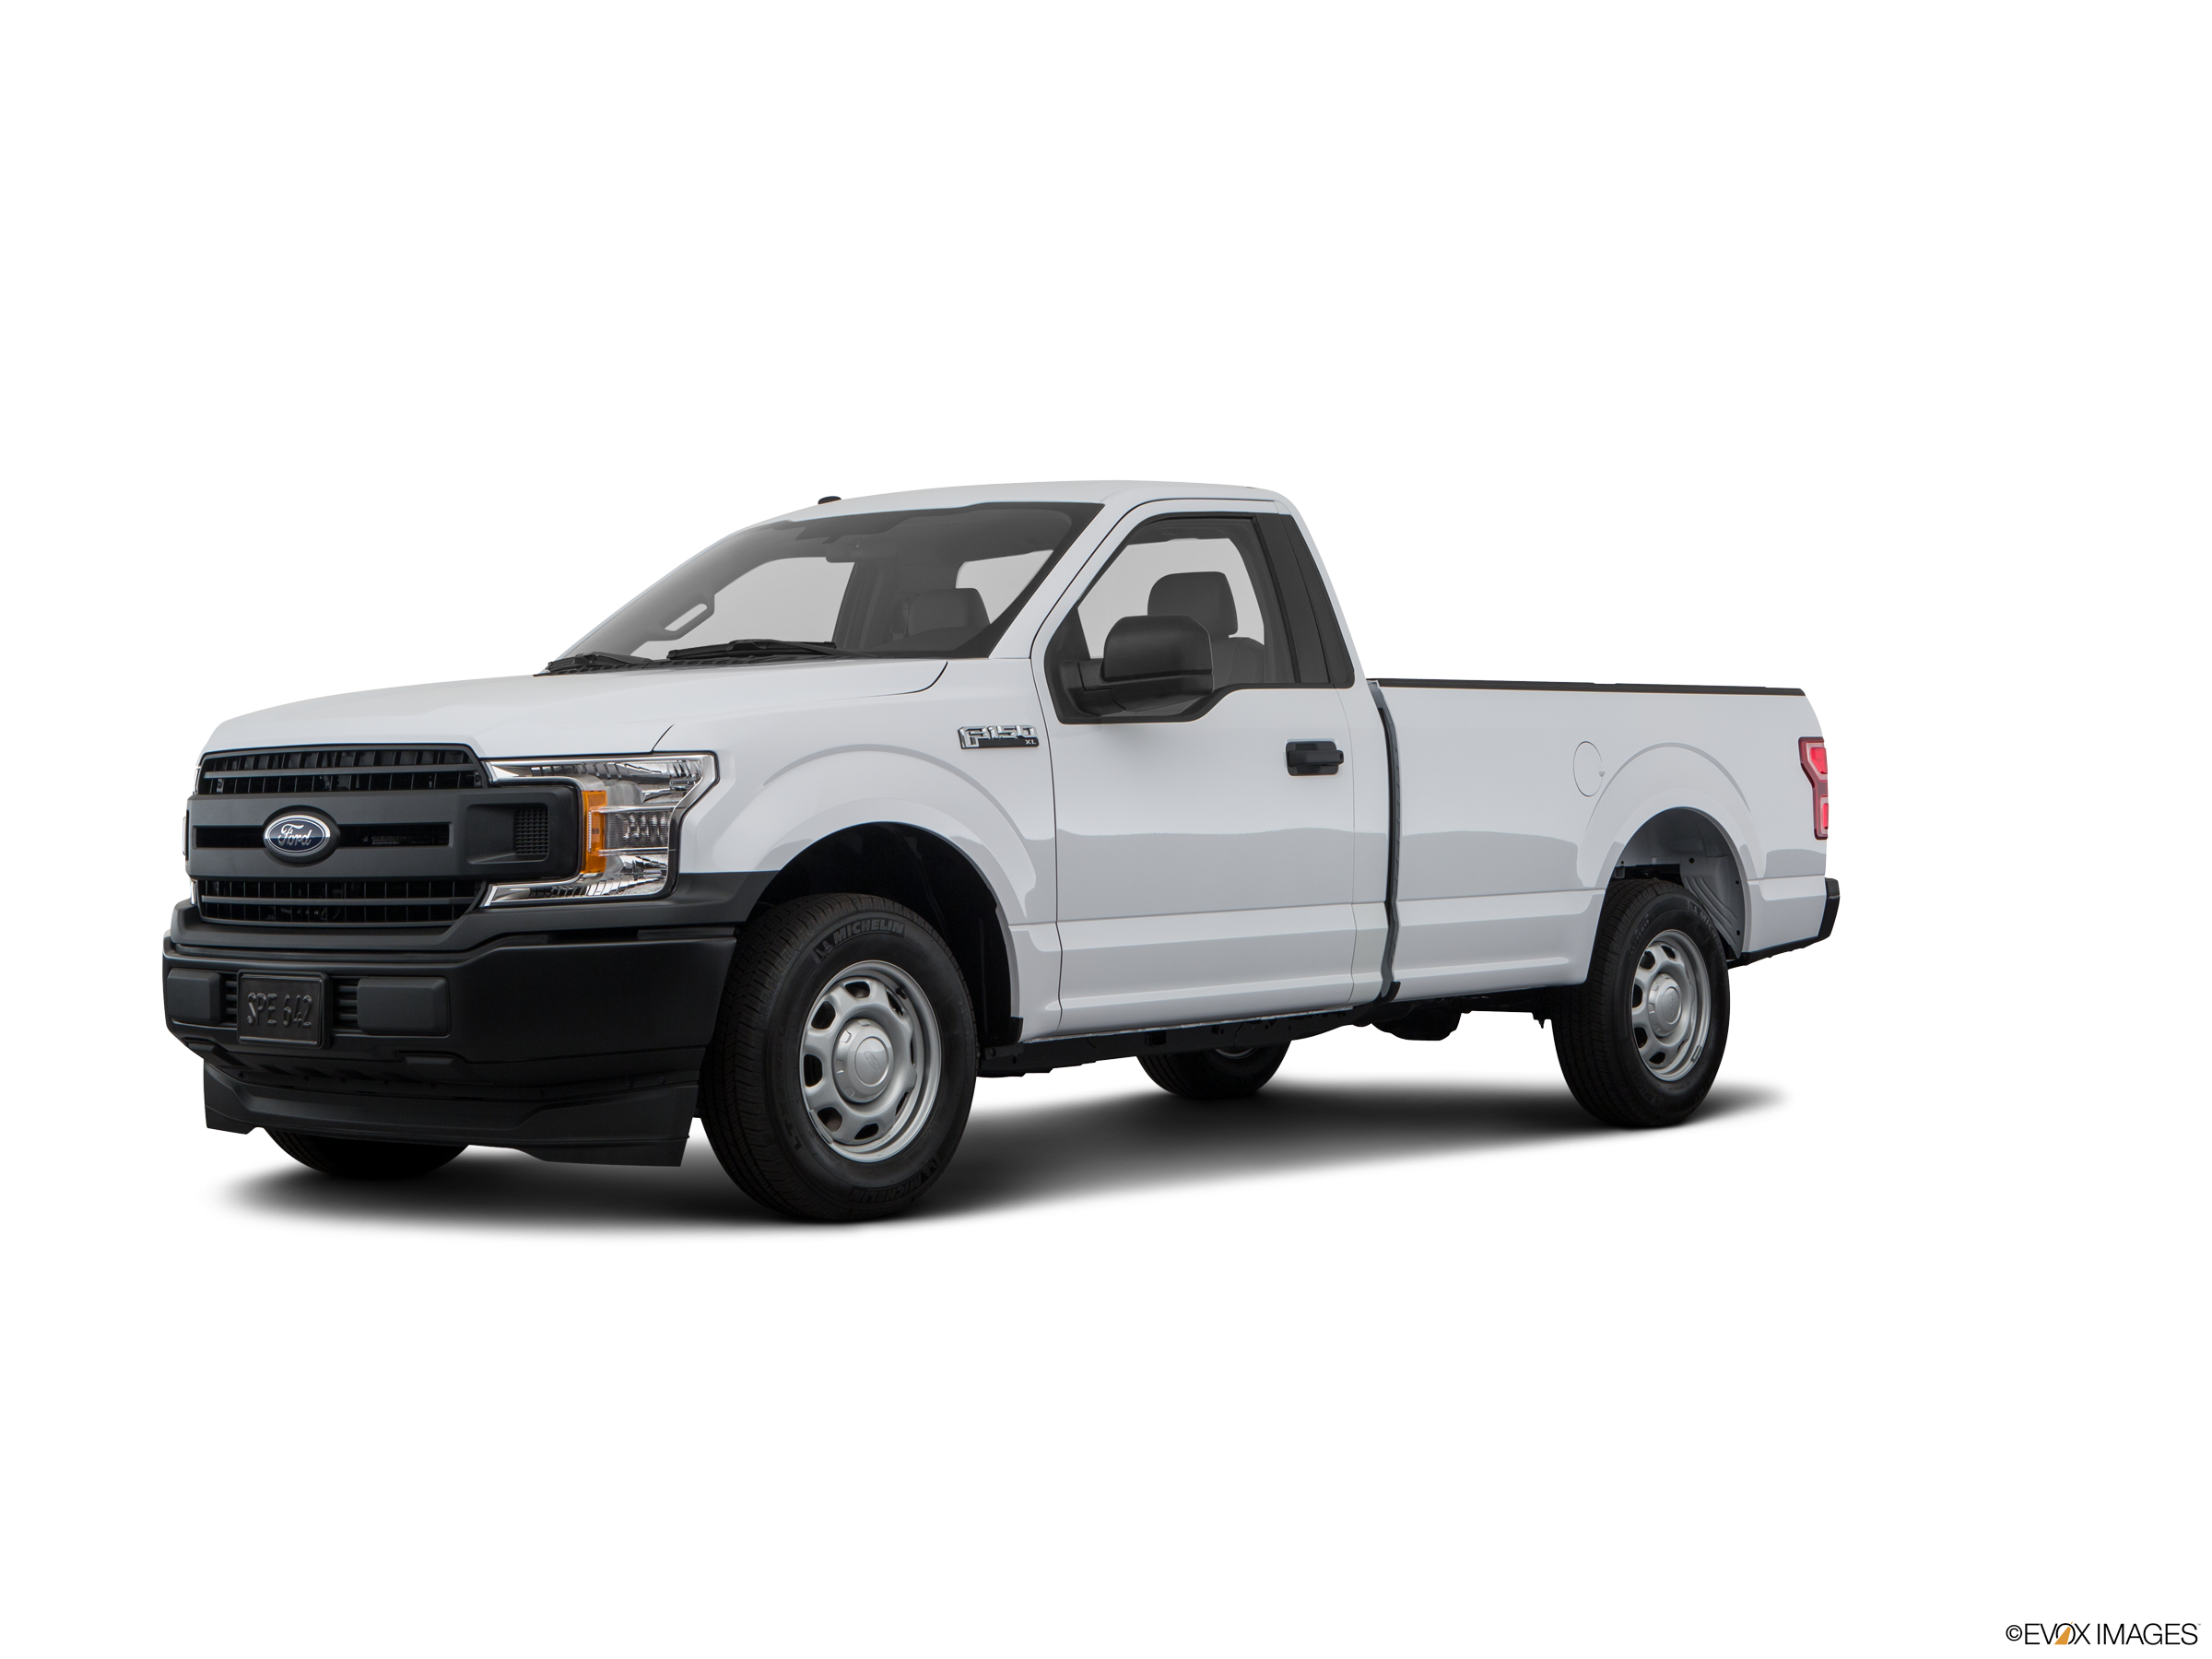 2019 Ford F150 Regular Cab Pricing Reviews Ratings